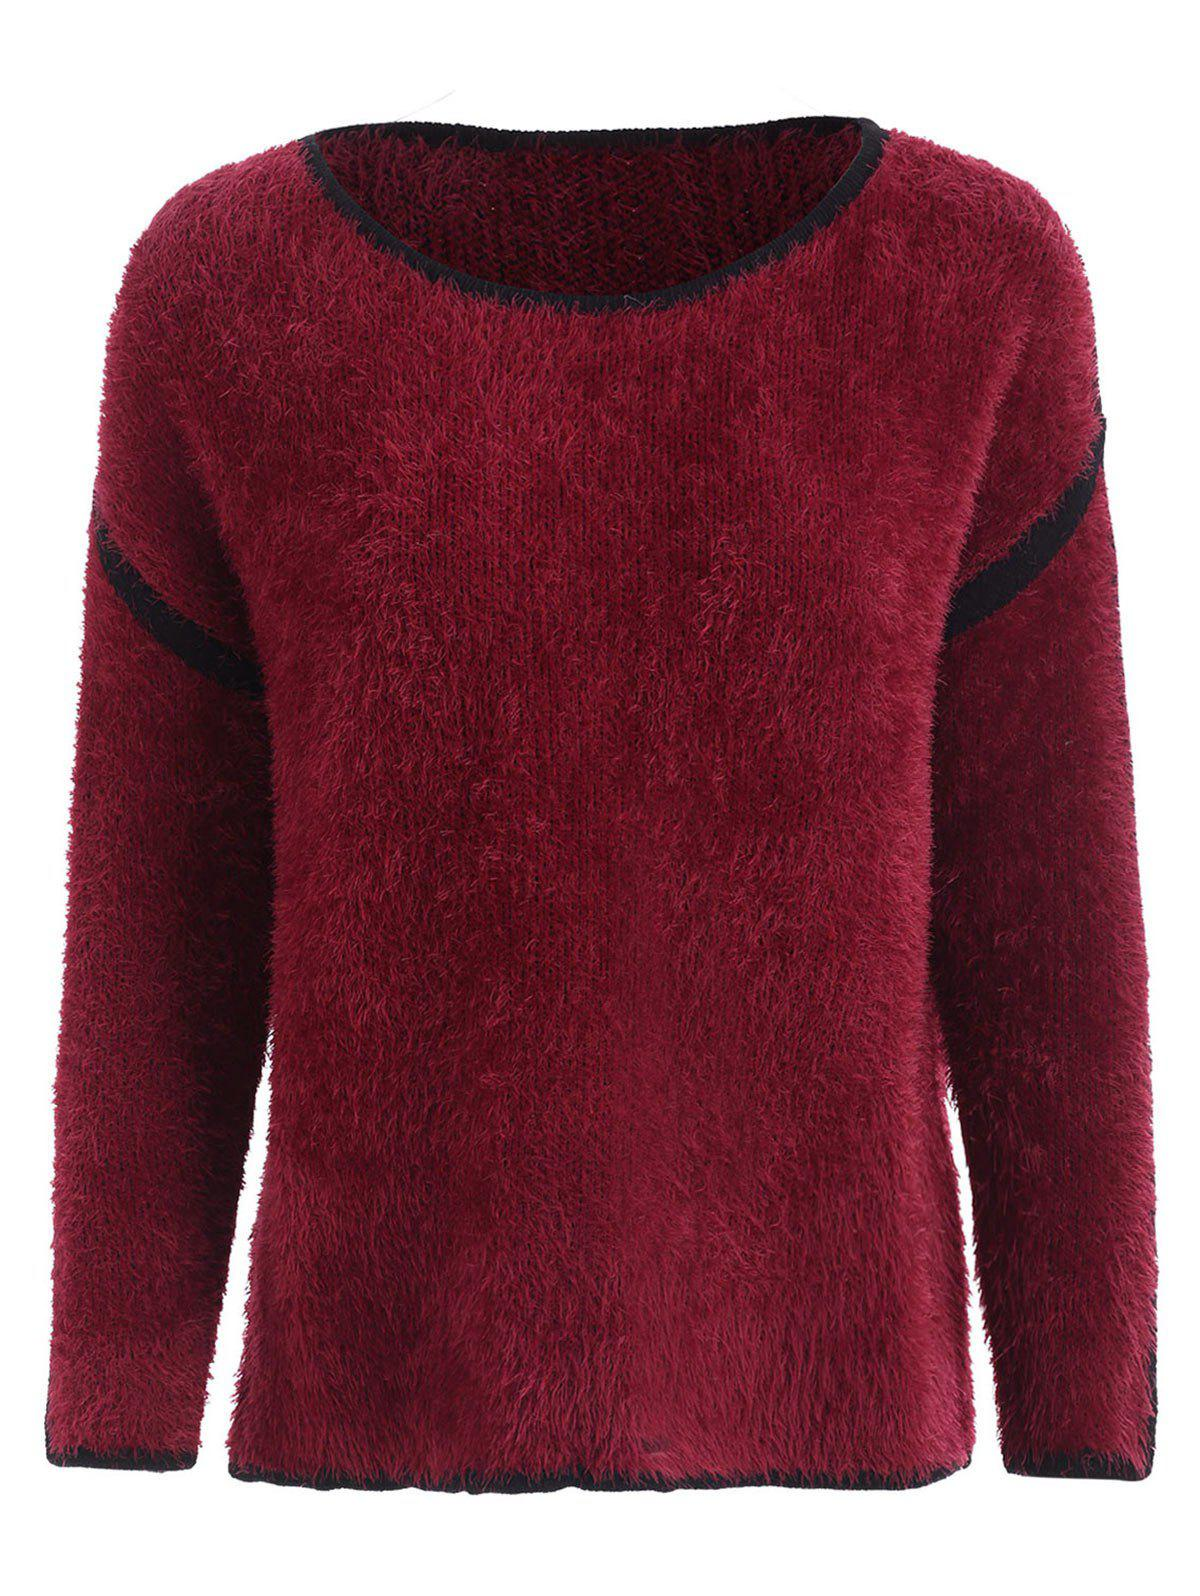 Chandail Pull-over Fourré en Blocs de Couleurs - Rouge S